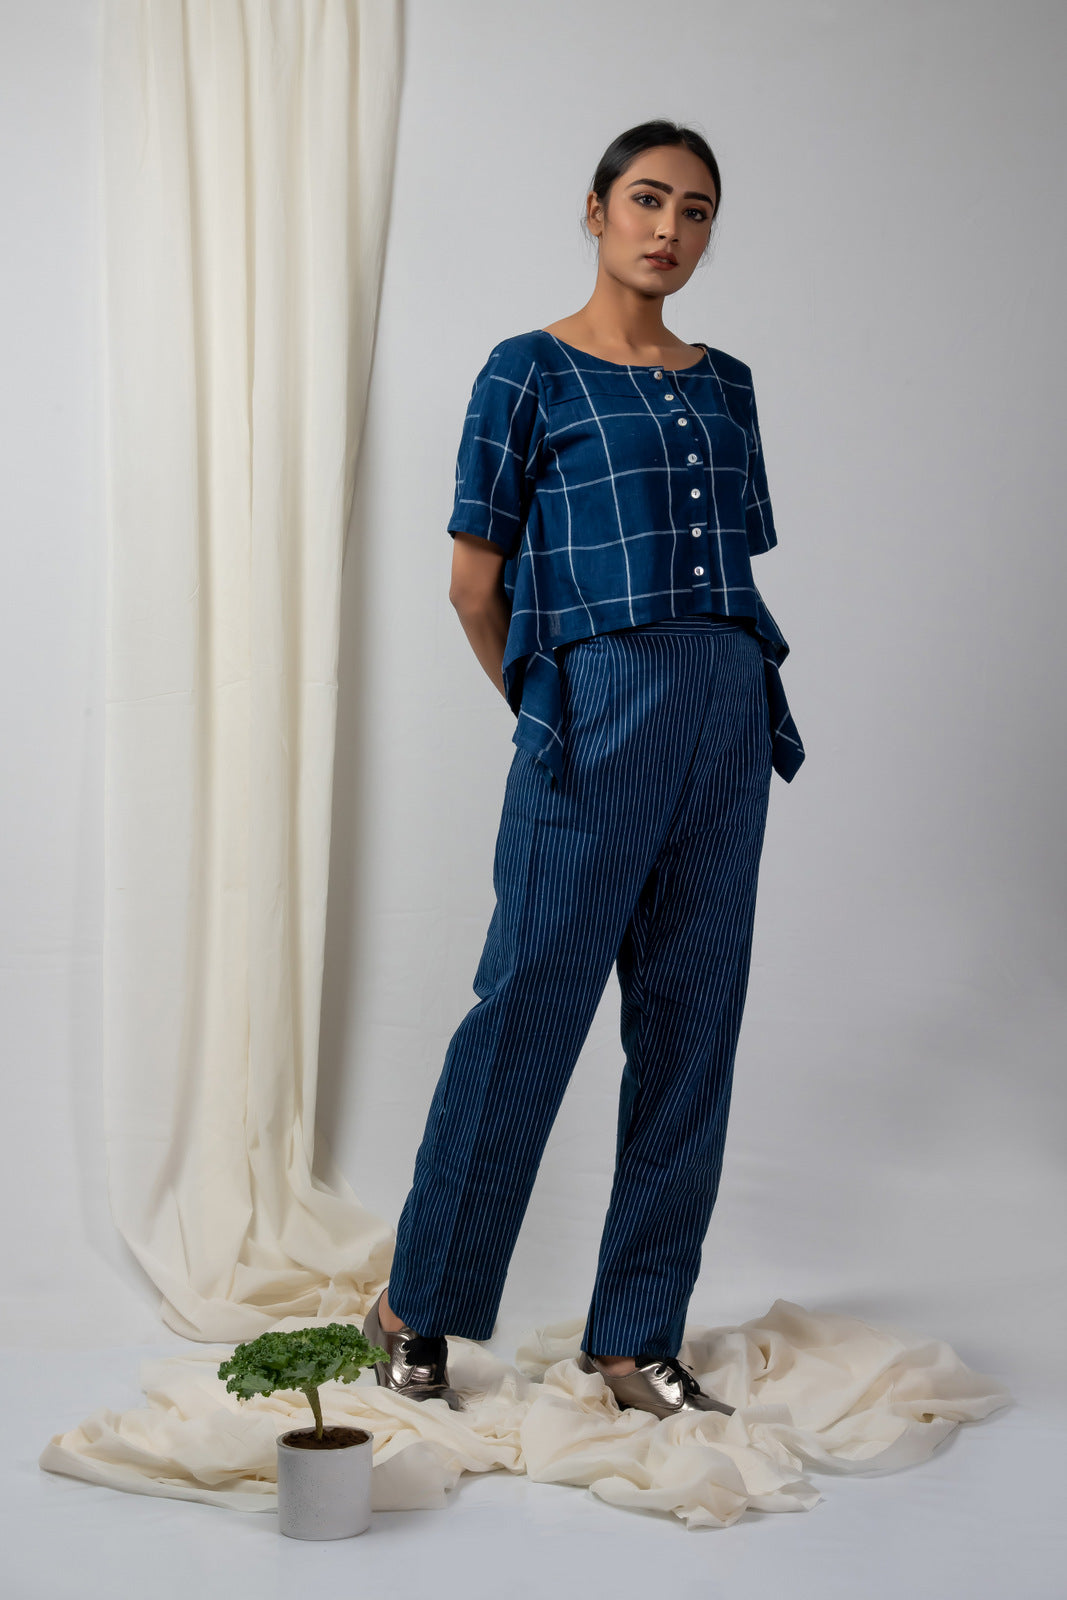 Indigo Checks Asymmetric Top and Pants Set - SOUL EARTH